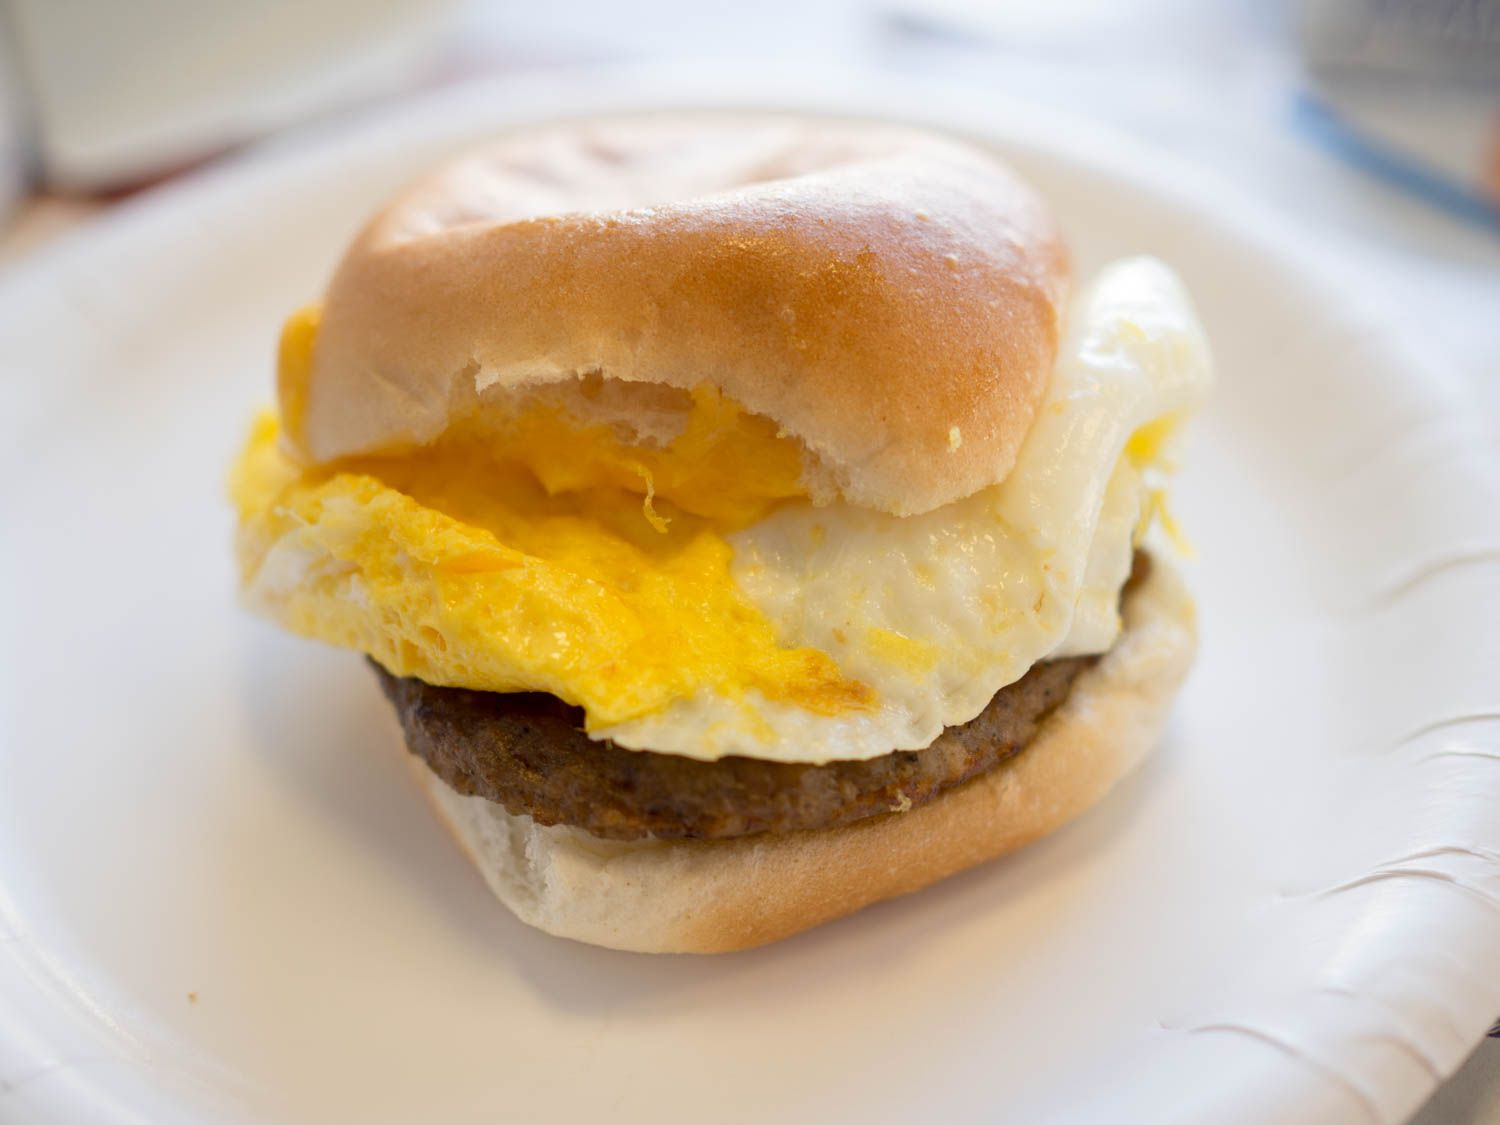 An egg sandwich from White Castle on a paper plate